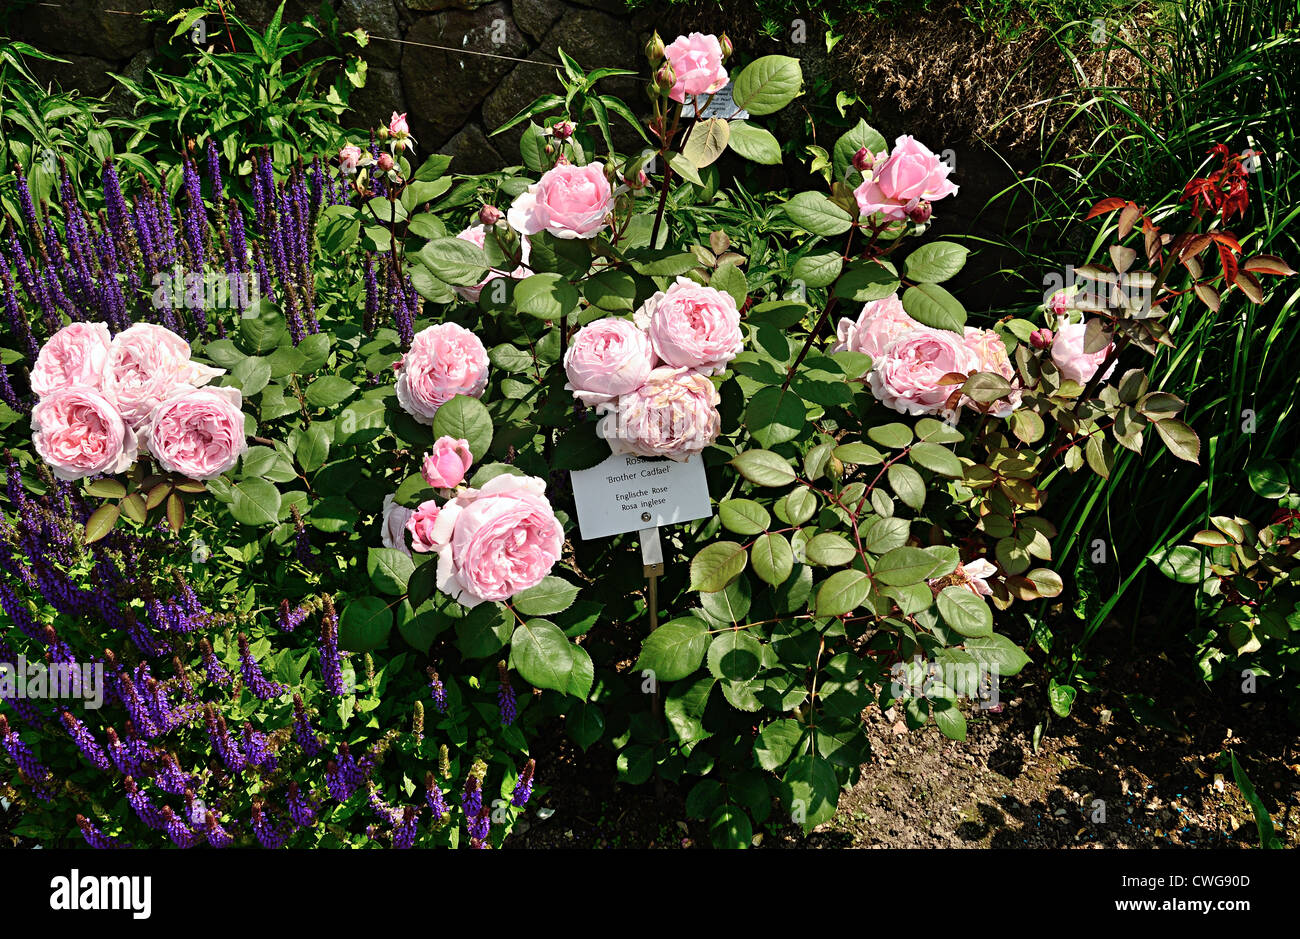 brother cadfael rose bush stock photo royalty free image. Black Bedroom Furniture Sets. Home Design Ideas